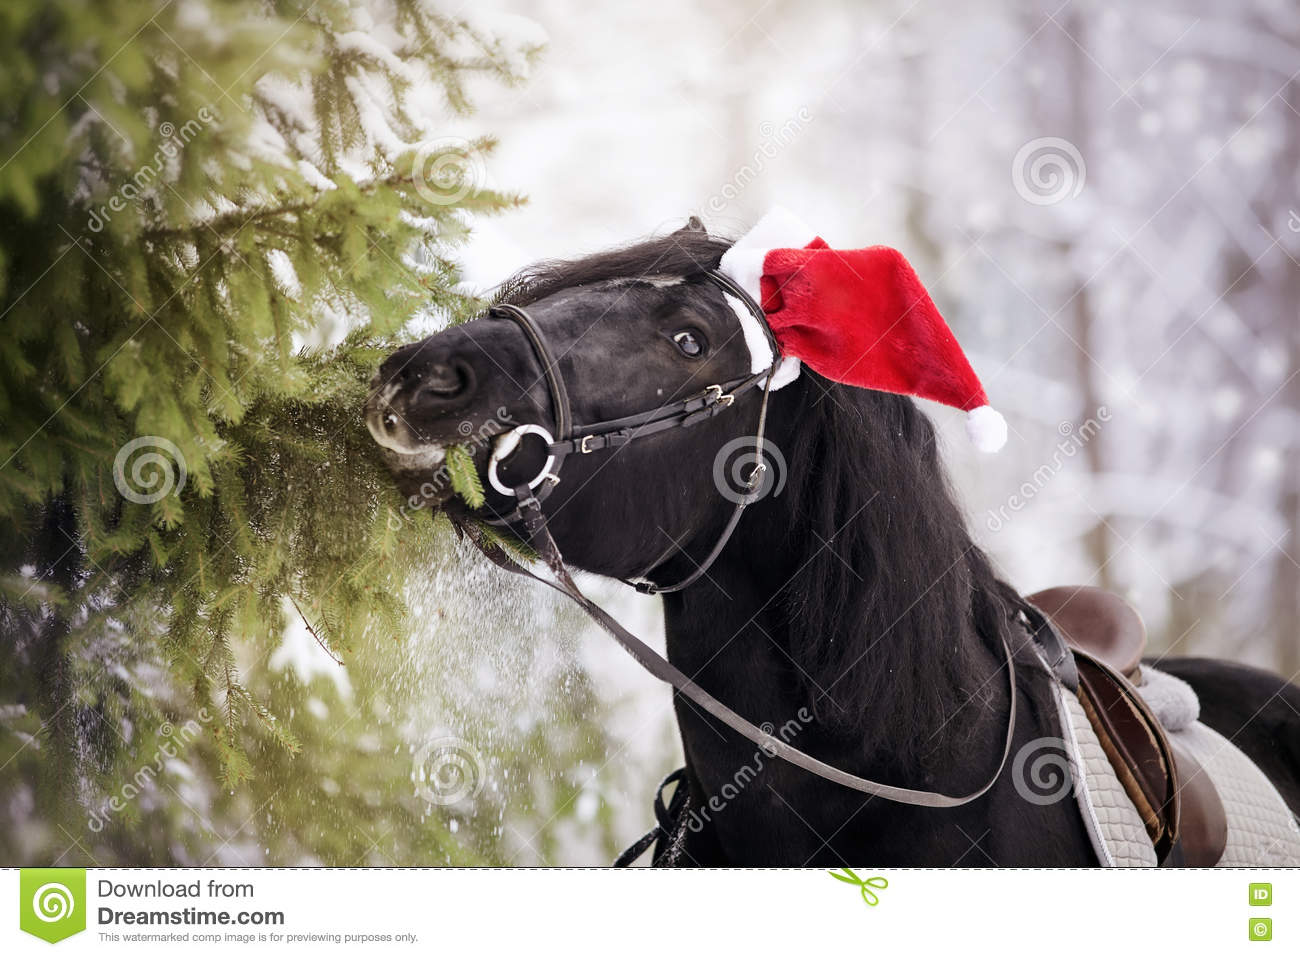 Horse In A Red Santa Claus Hat Eats Fir-tree Branches Stock Photo ... 2b1e95efba53